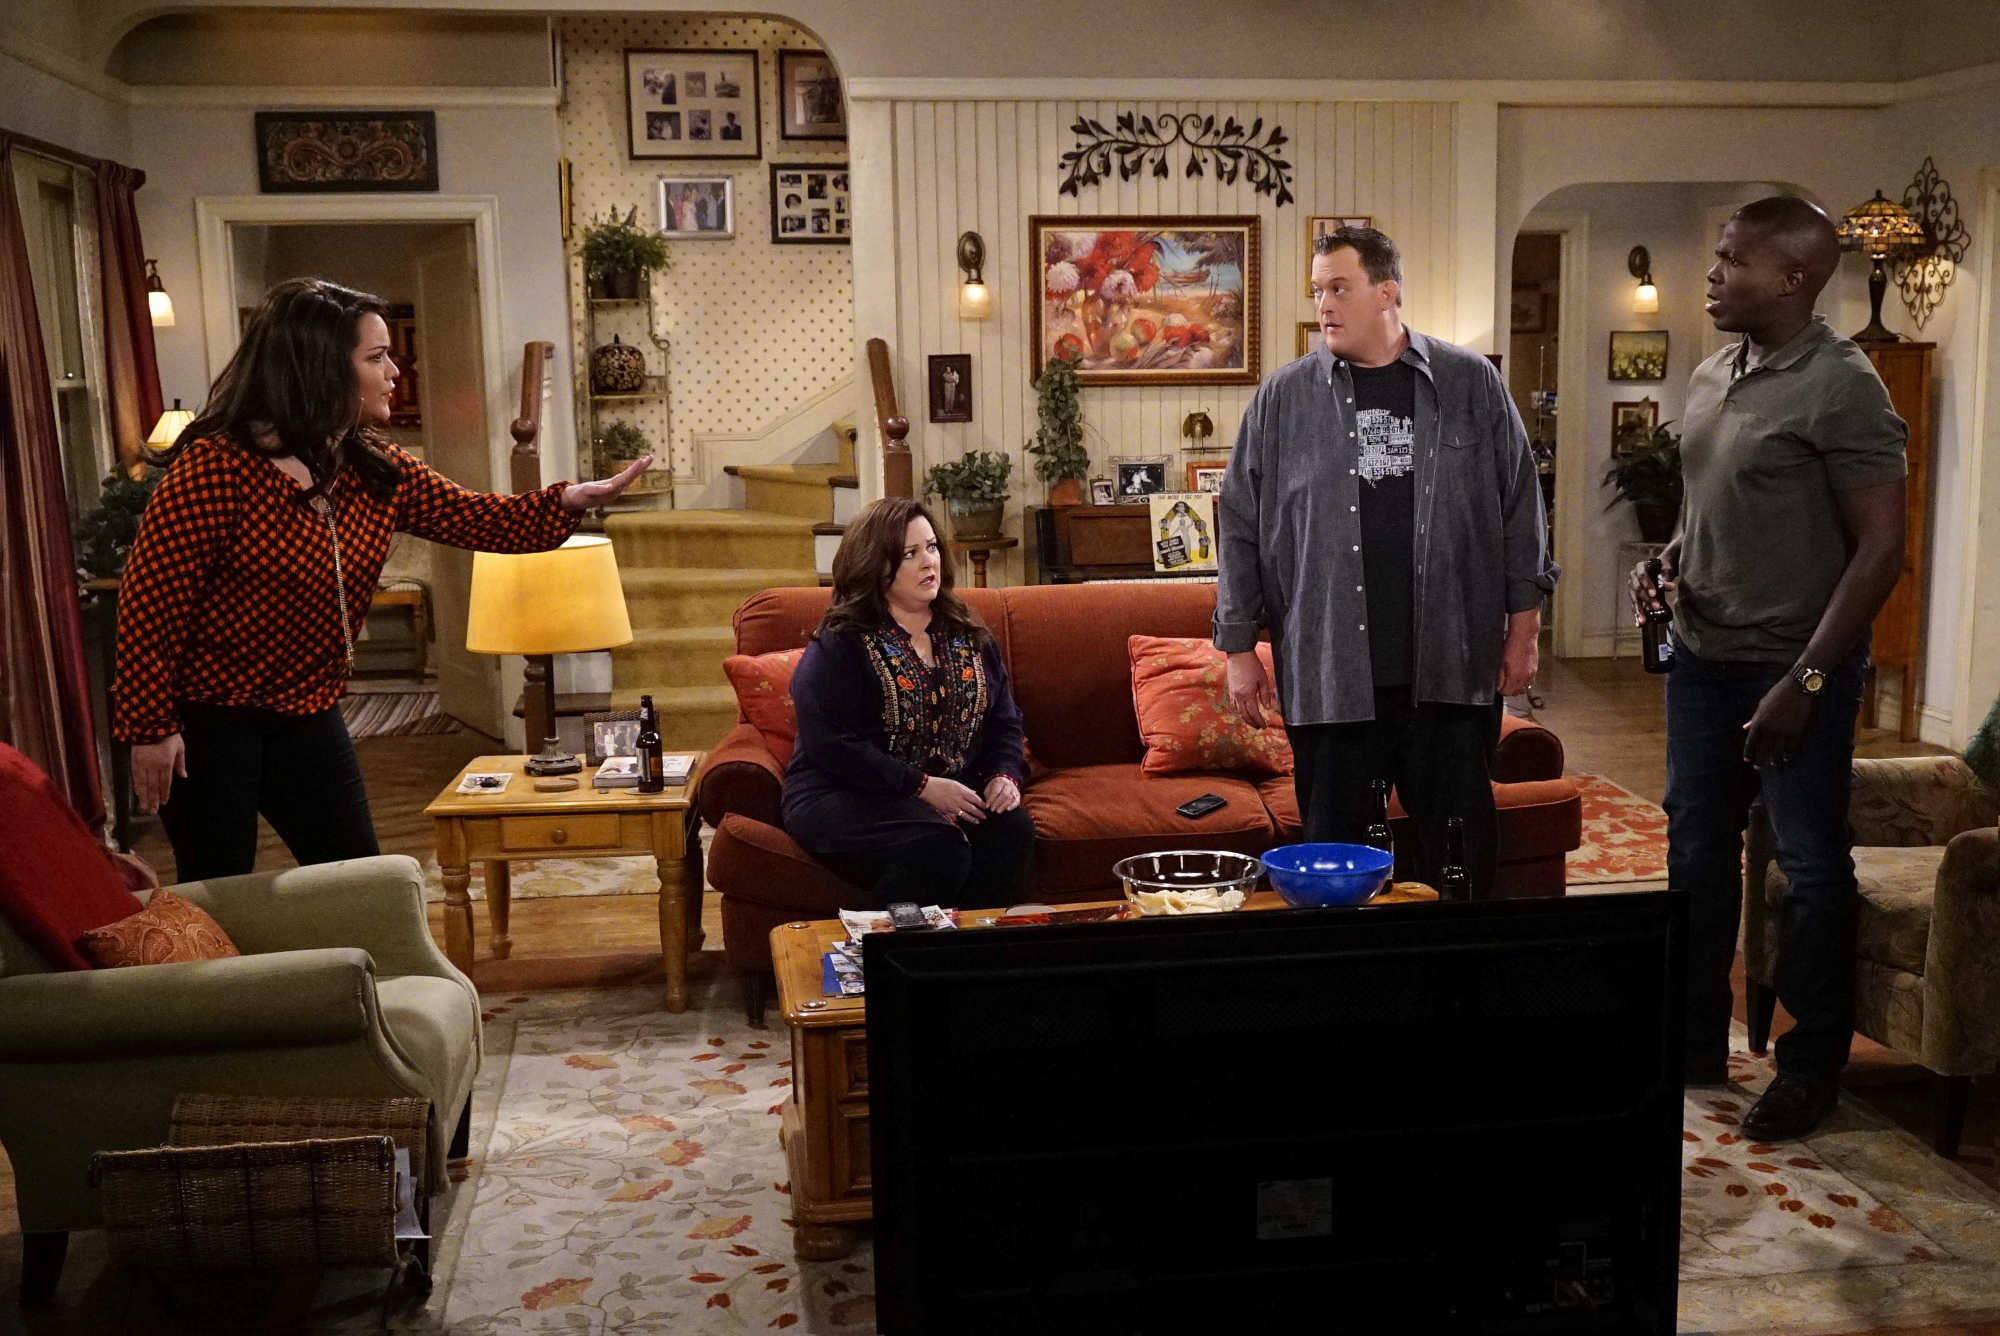 Need a reminder of where we last left off with Mike and Molly at the end of Season 5?